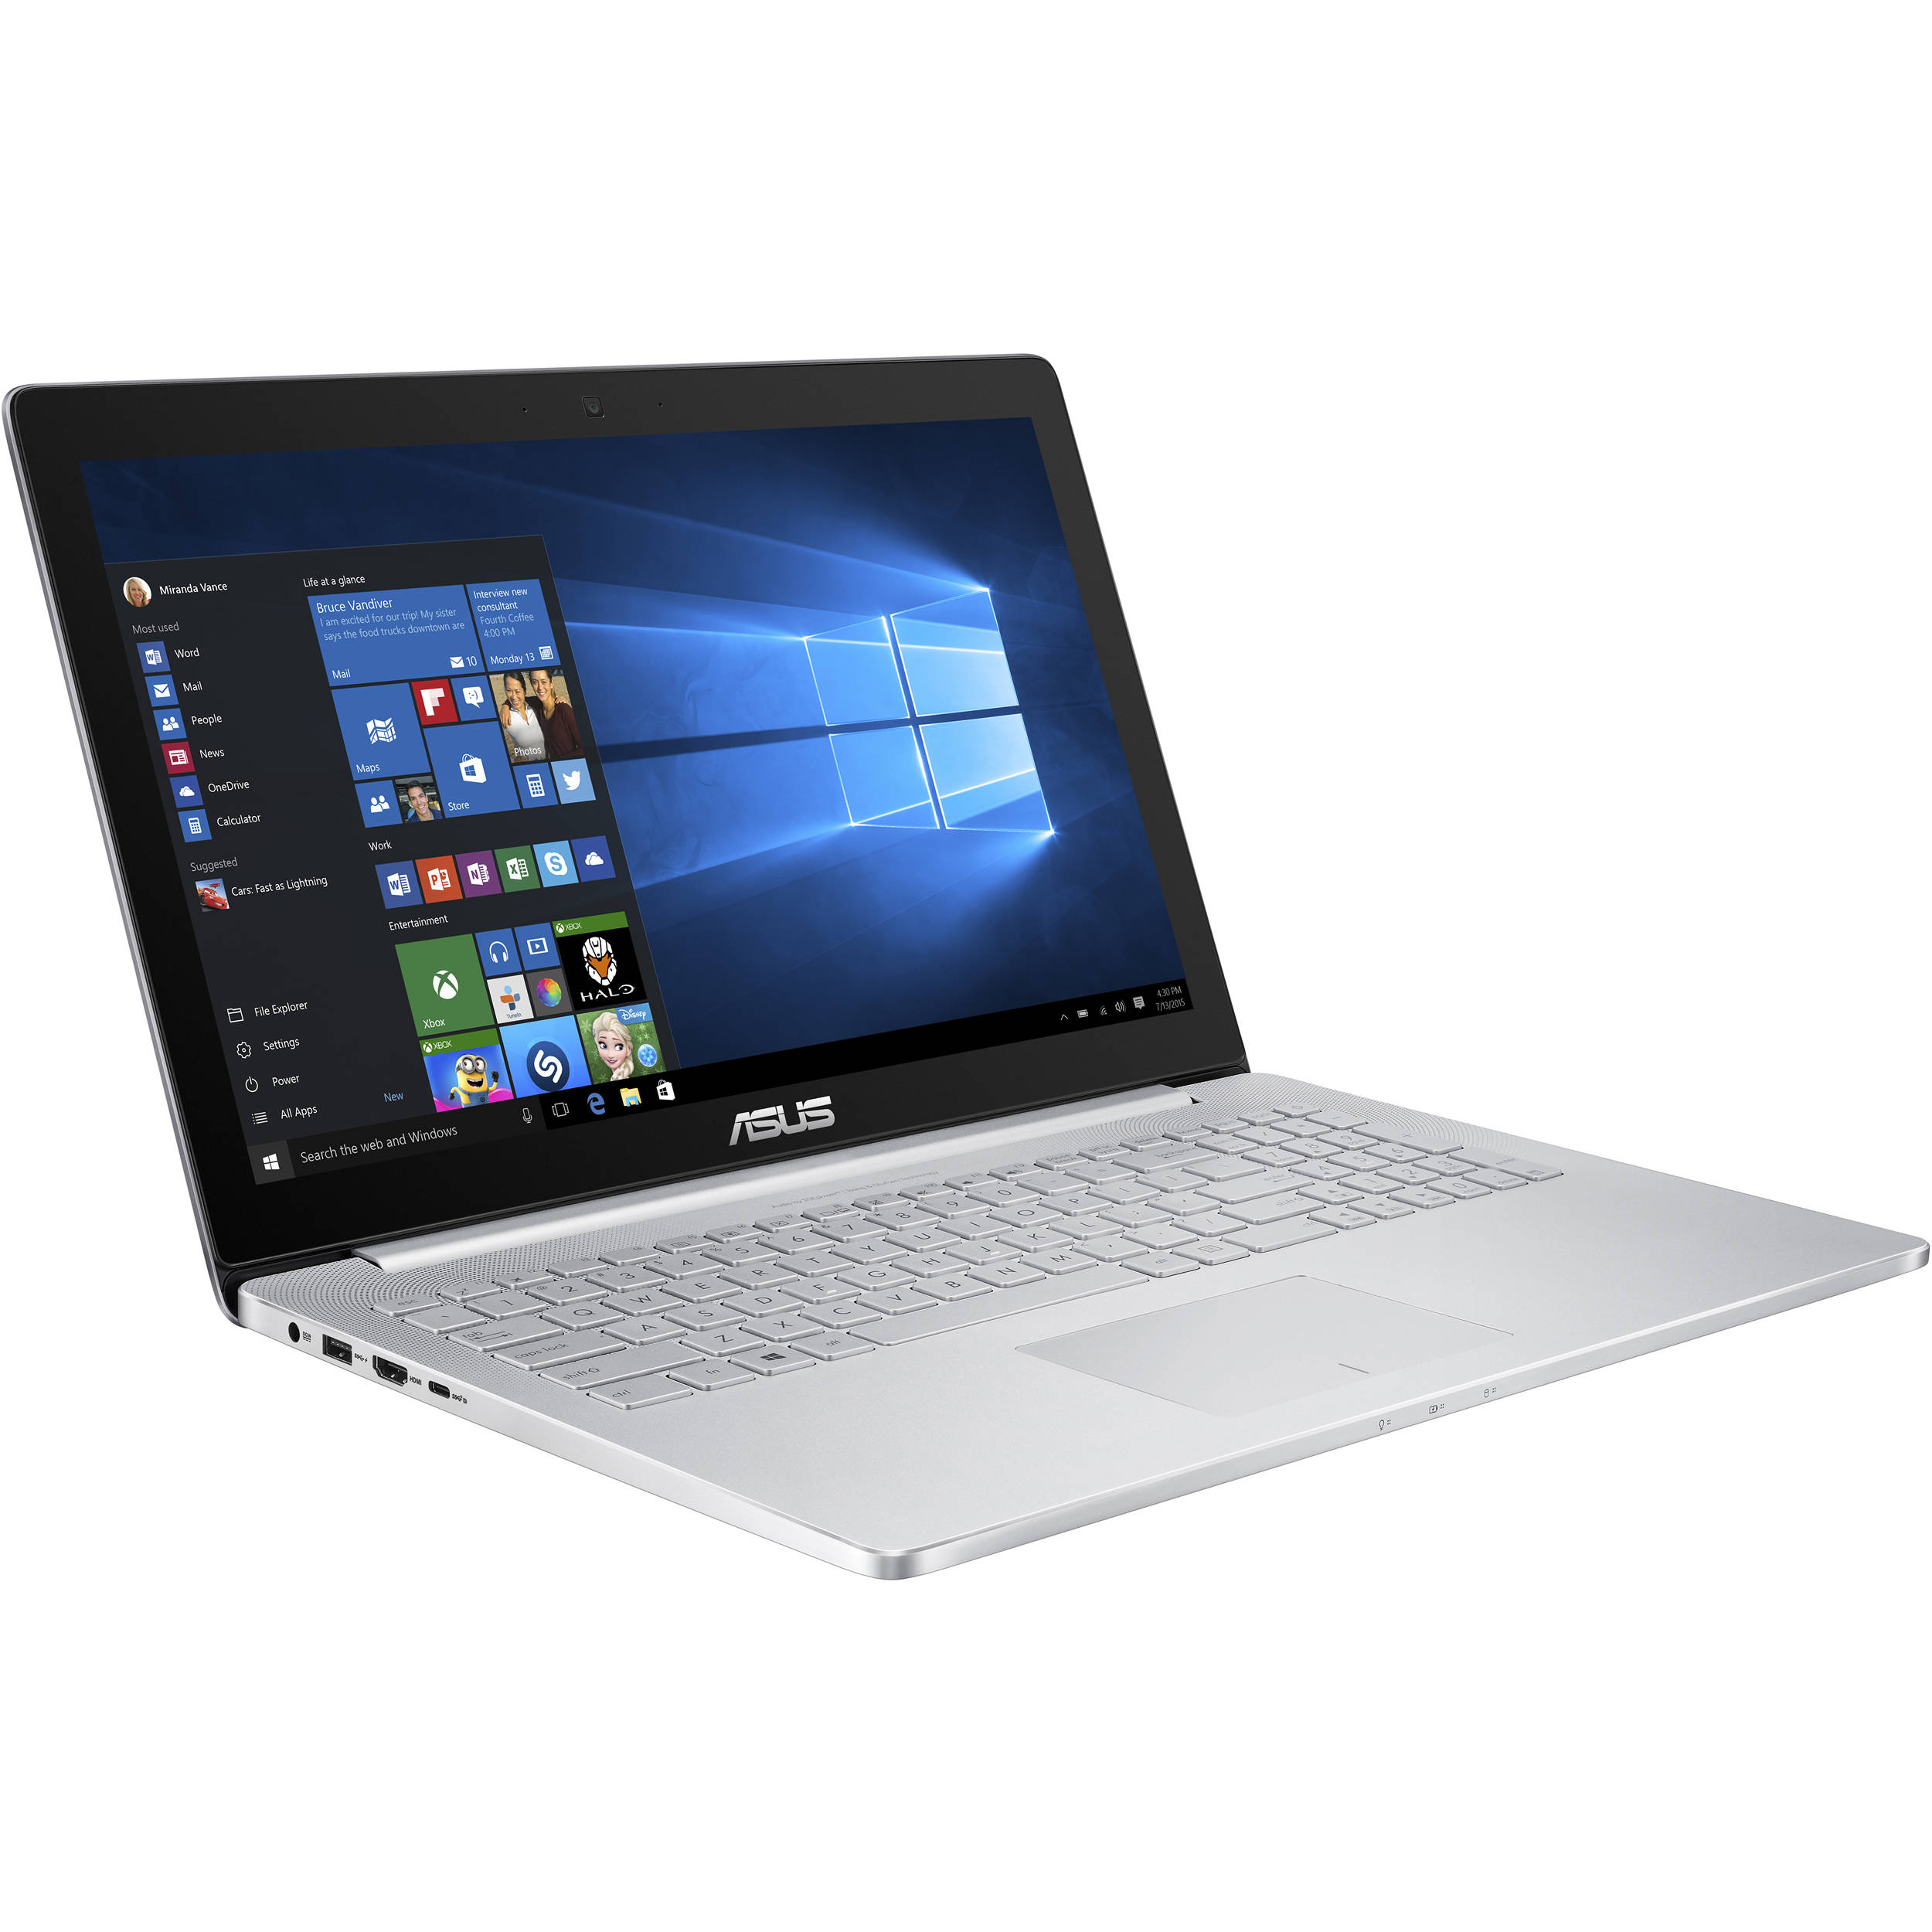 ASUS ZENBOOK Touch UX31A Intel Bluetooth Mac